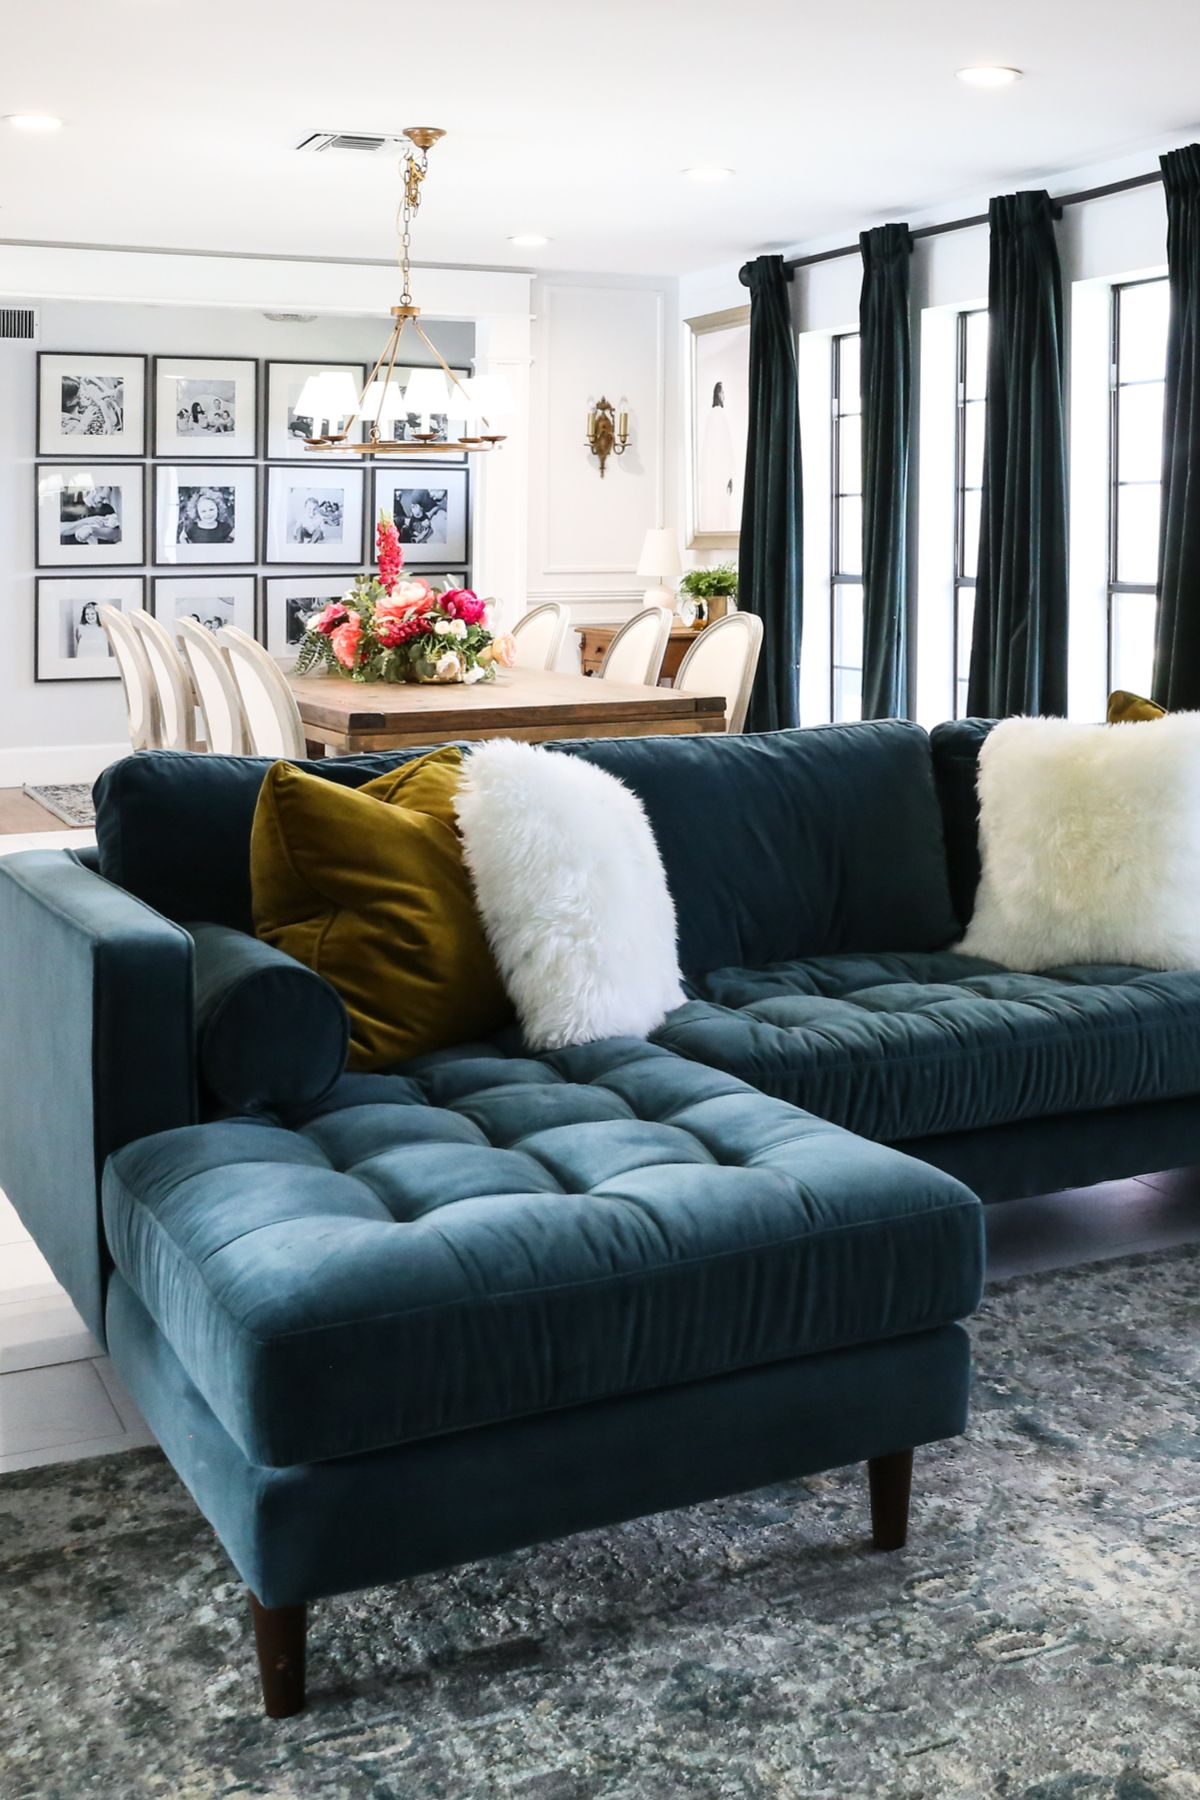 Deep as the sea. The Sven sectional features a chaise to lay yourself out on. Go on, lounge hard. Photo by Classy Clutter. #VelvetSofa #VelvetFurniture #LivingRoomIdeas #LivingRoomDesign